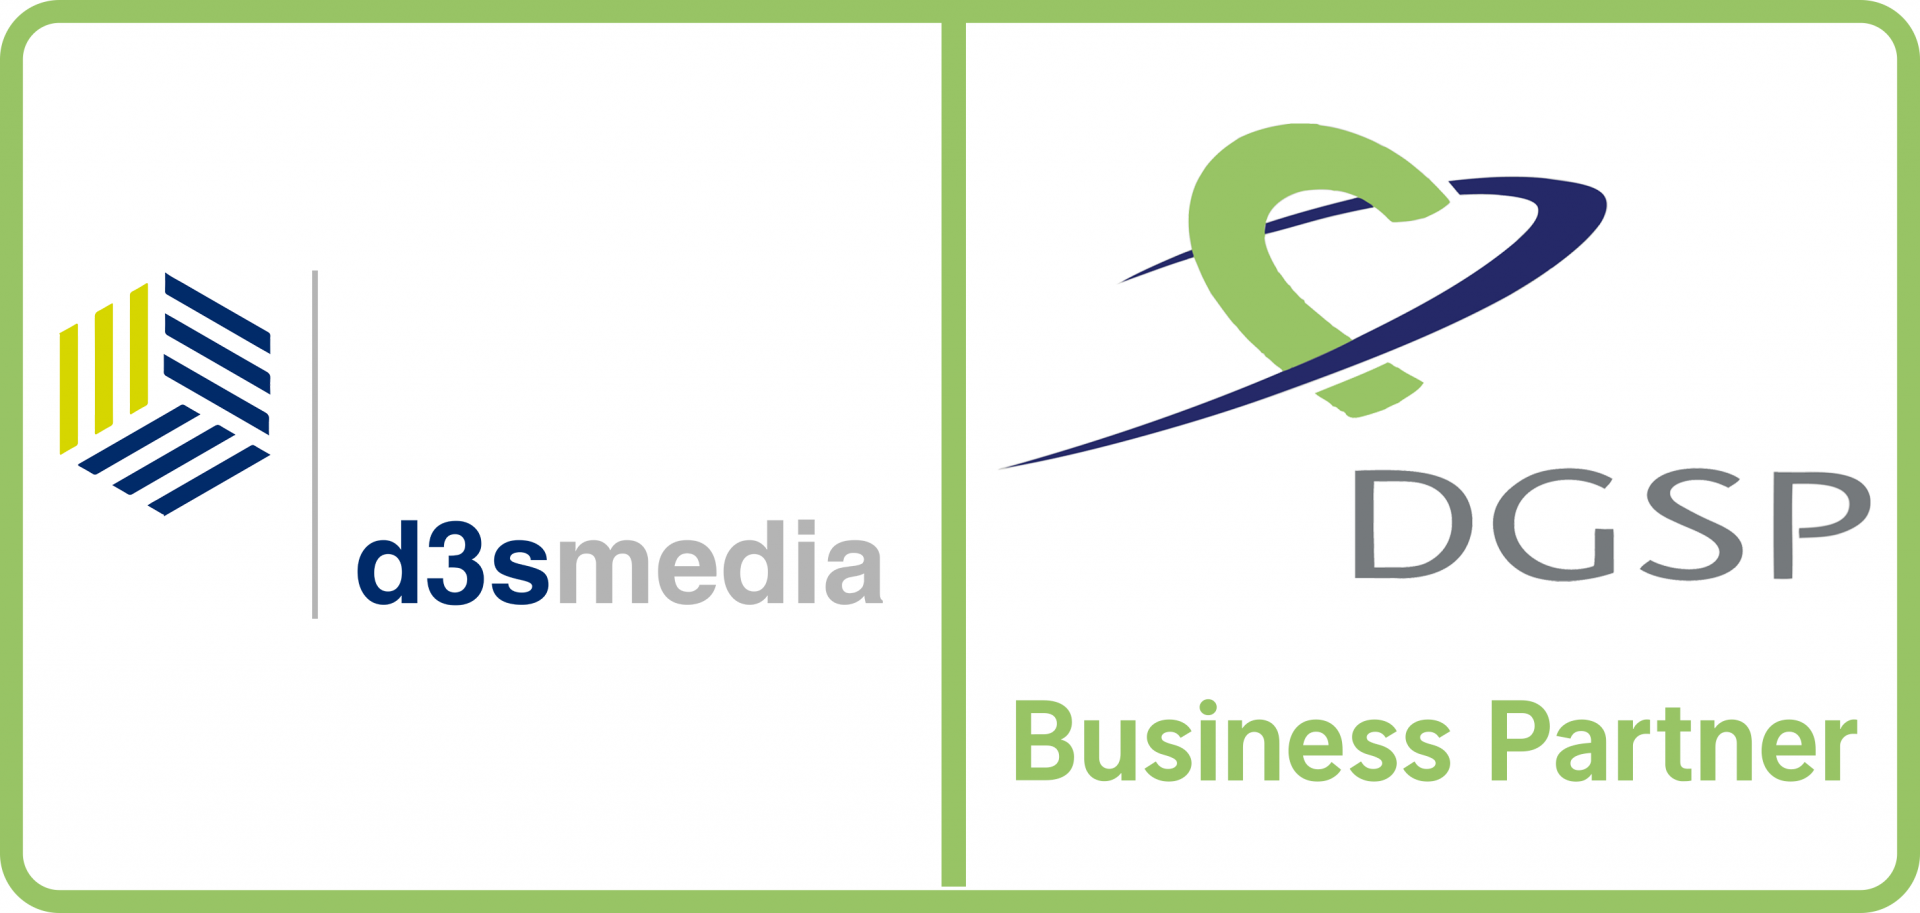 Business Partner D3Smedia